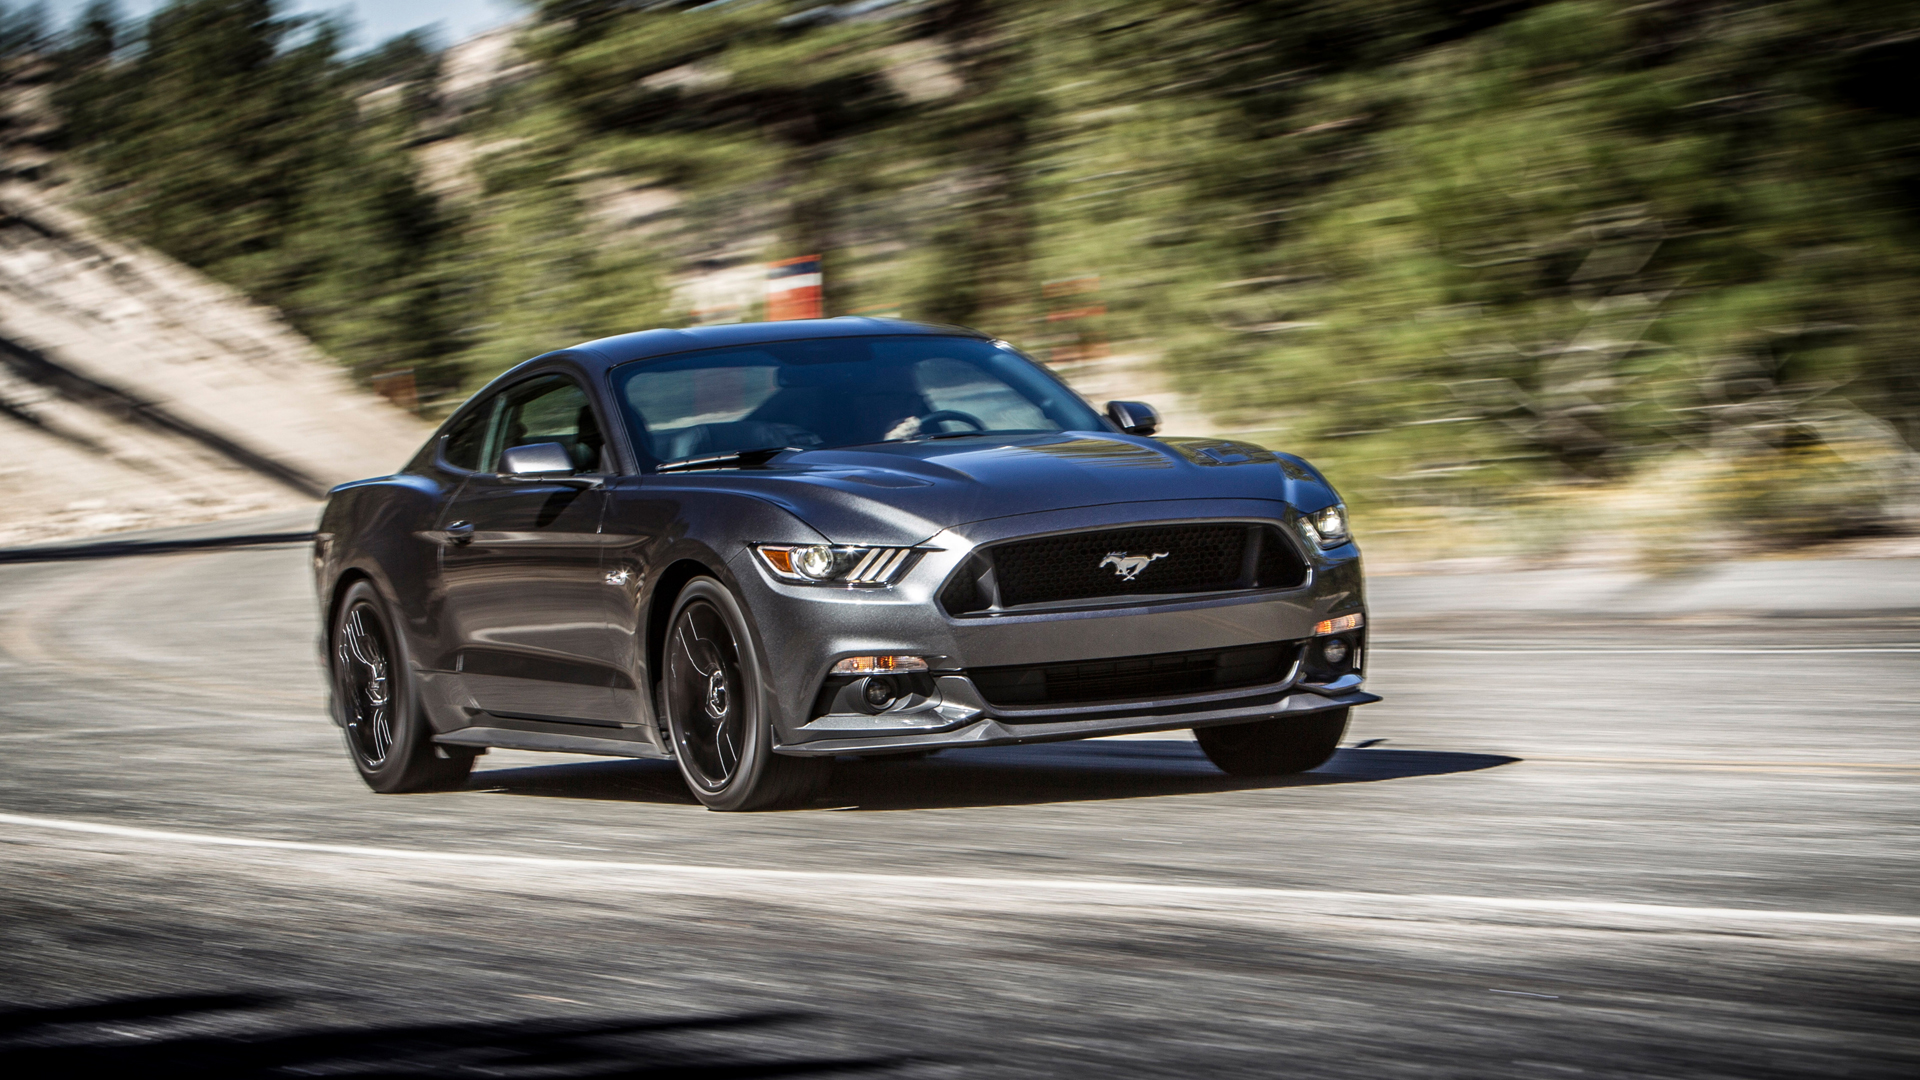 Pics Ford Mustang GT 2015 Wallpaper Ford Mustang GT 2015 Wallpaper HD 1920x1080